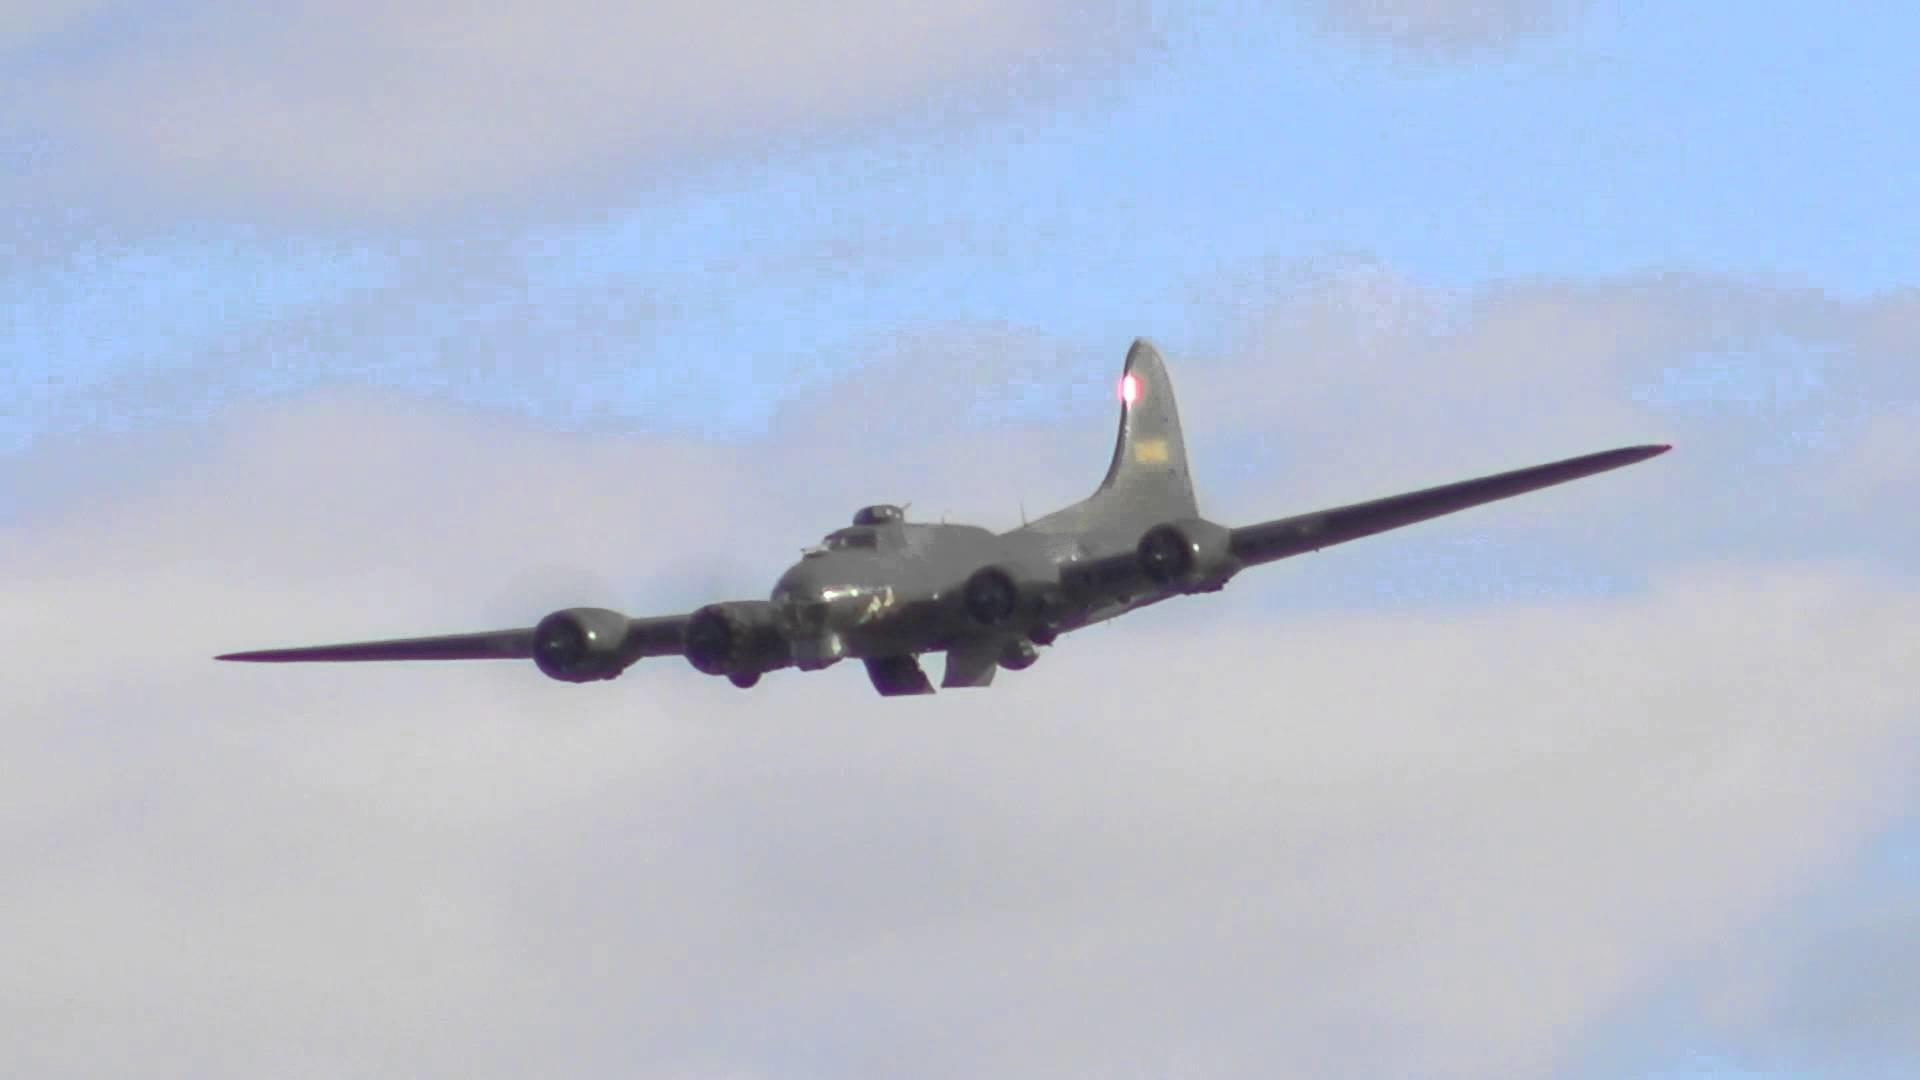 Boeing B-17 Flying Fortress, 'Sally B' – Duxford Battle of Britain 75  Airshow 2015